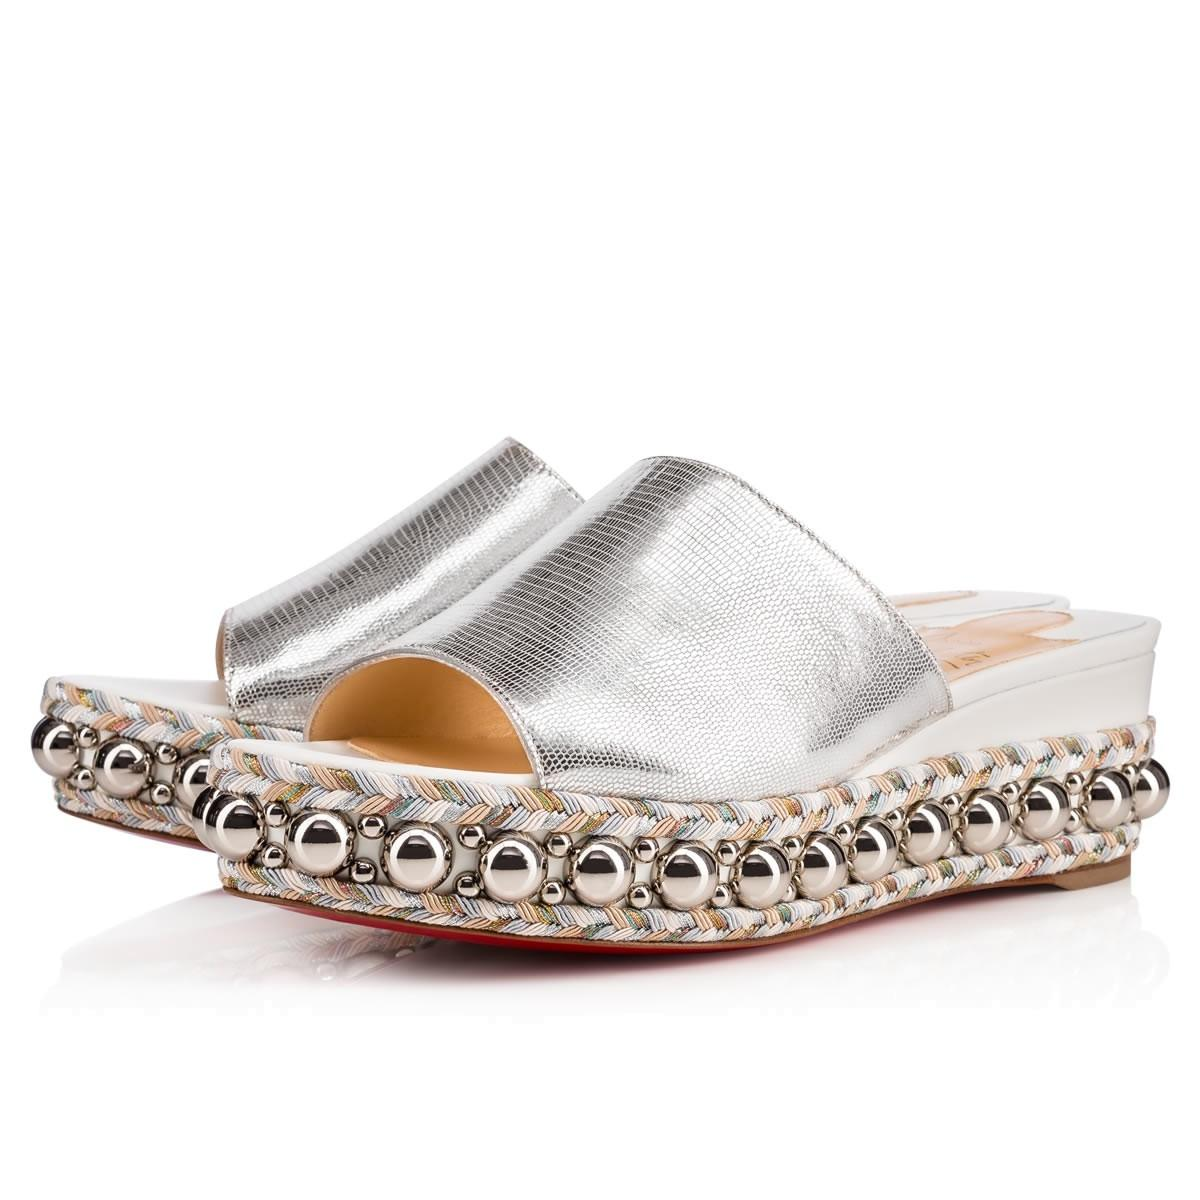 9c3a9cde192b Christian Louboutin Silver Silver Silver Janibasse Stud Wedge Slides Mules  Sandal Platforms Size EU 39 (Approx. US 9) Regular (M